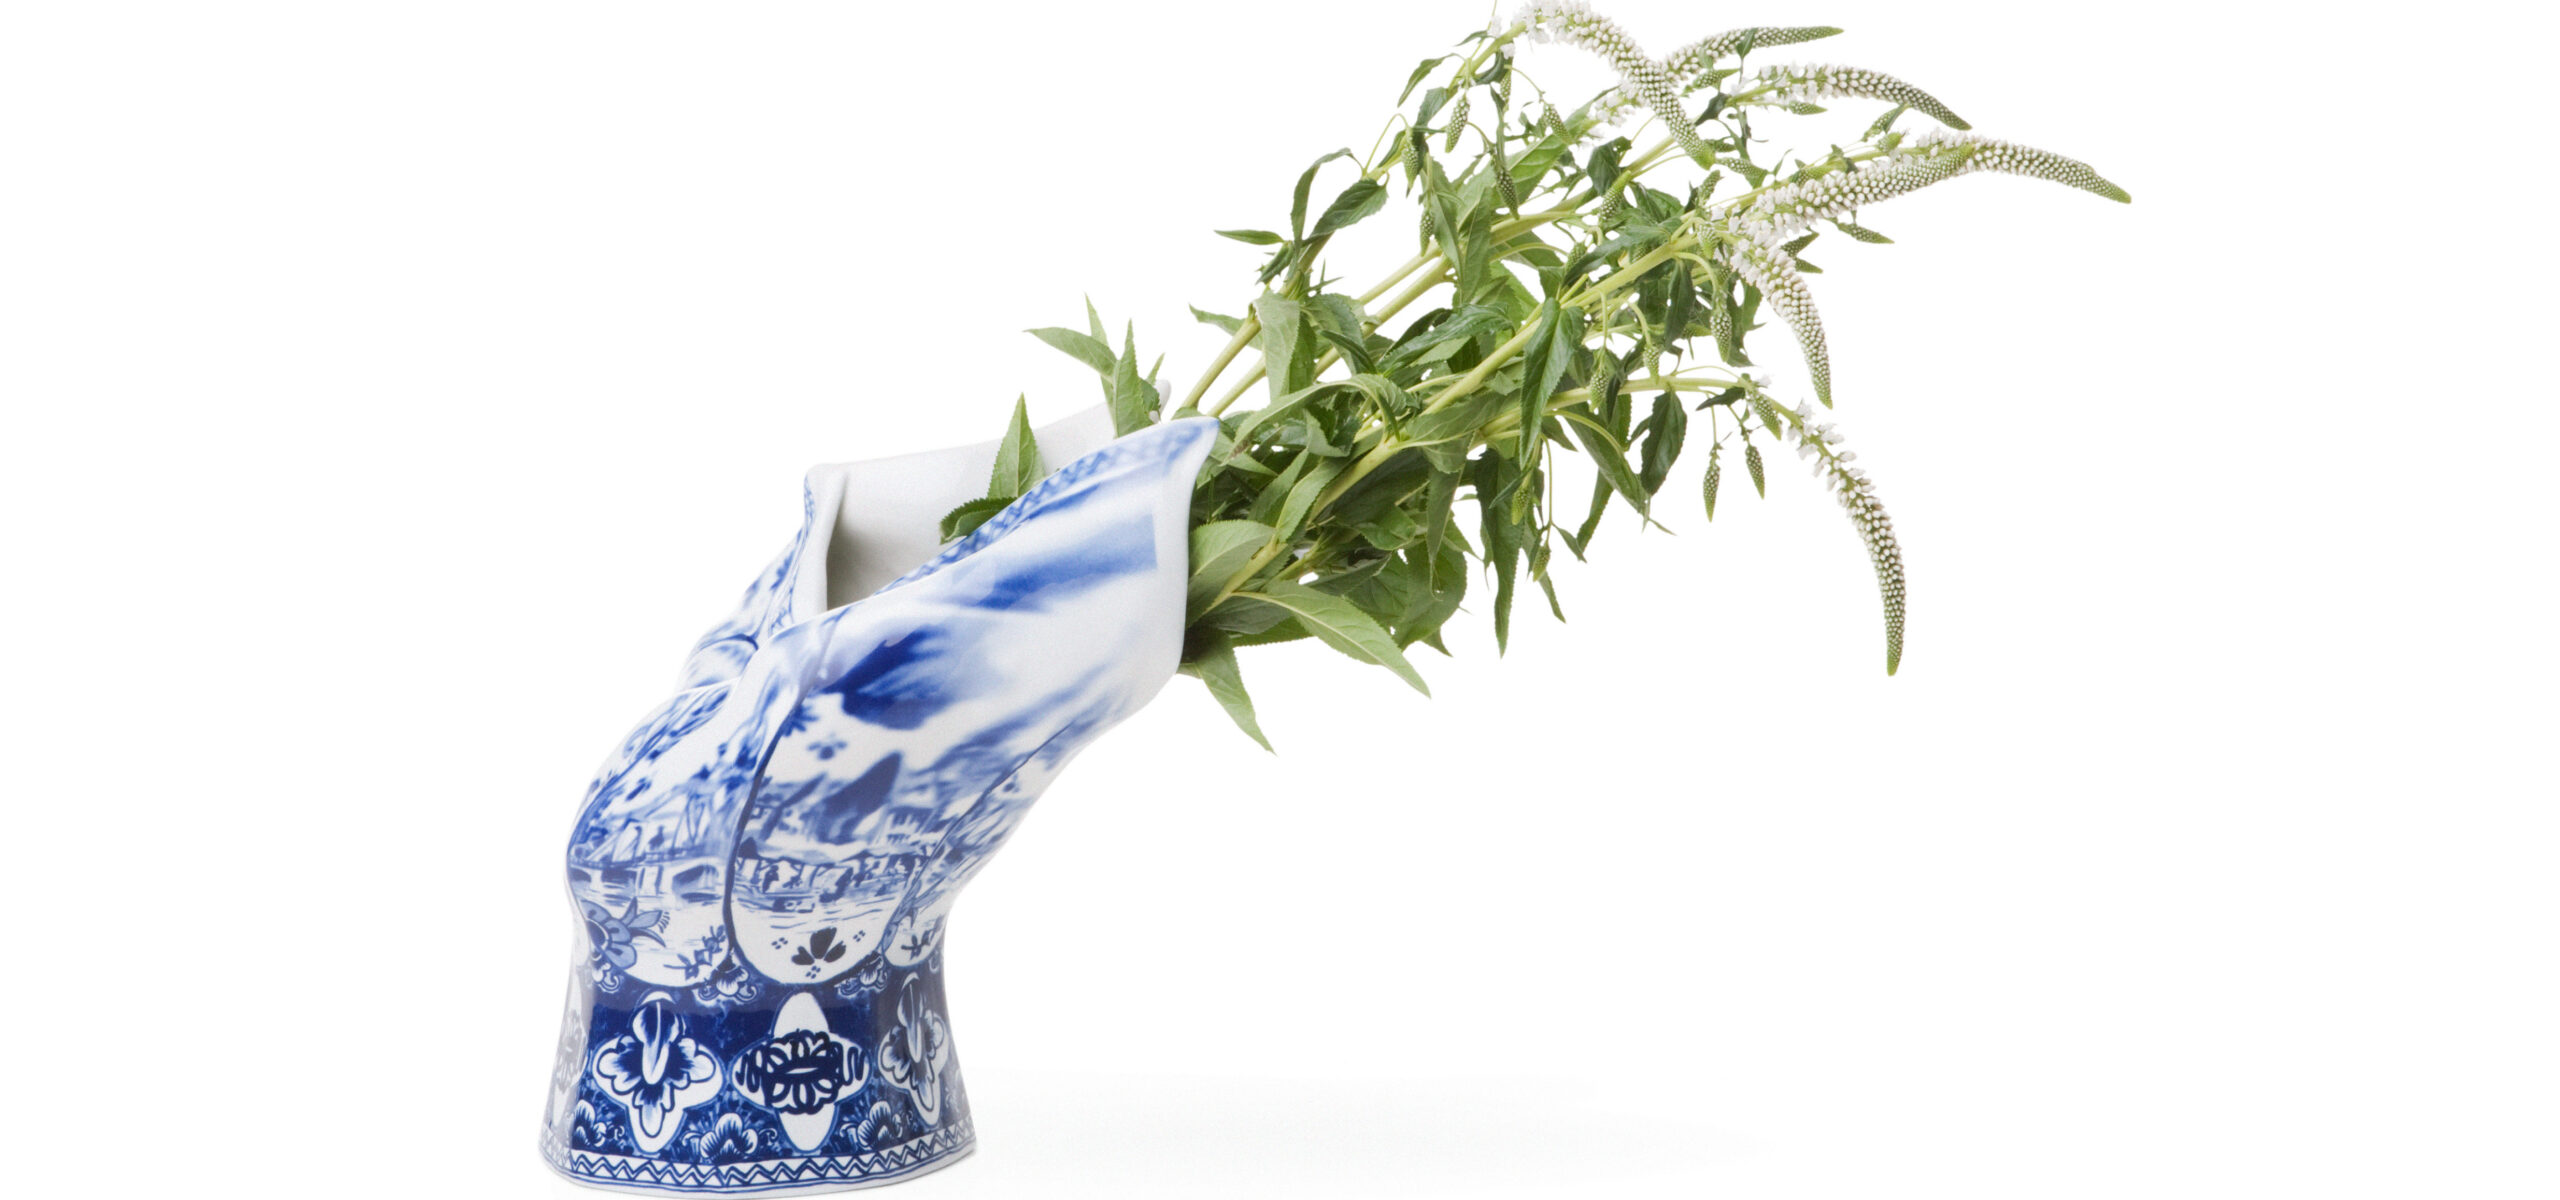 Blue and White ceramic vase bent toward right with greenery sticking out